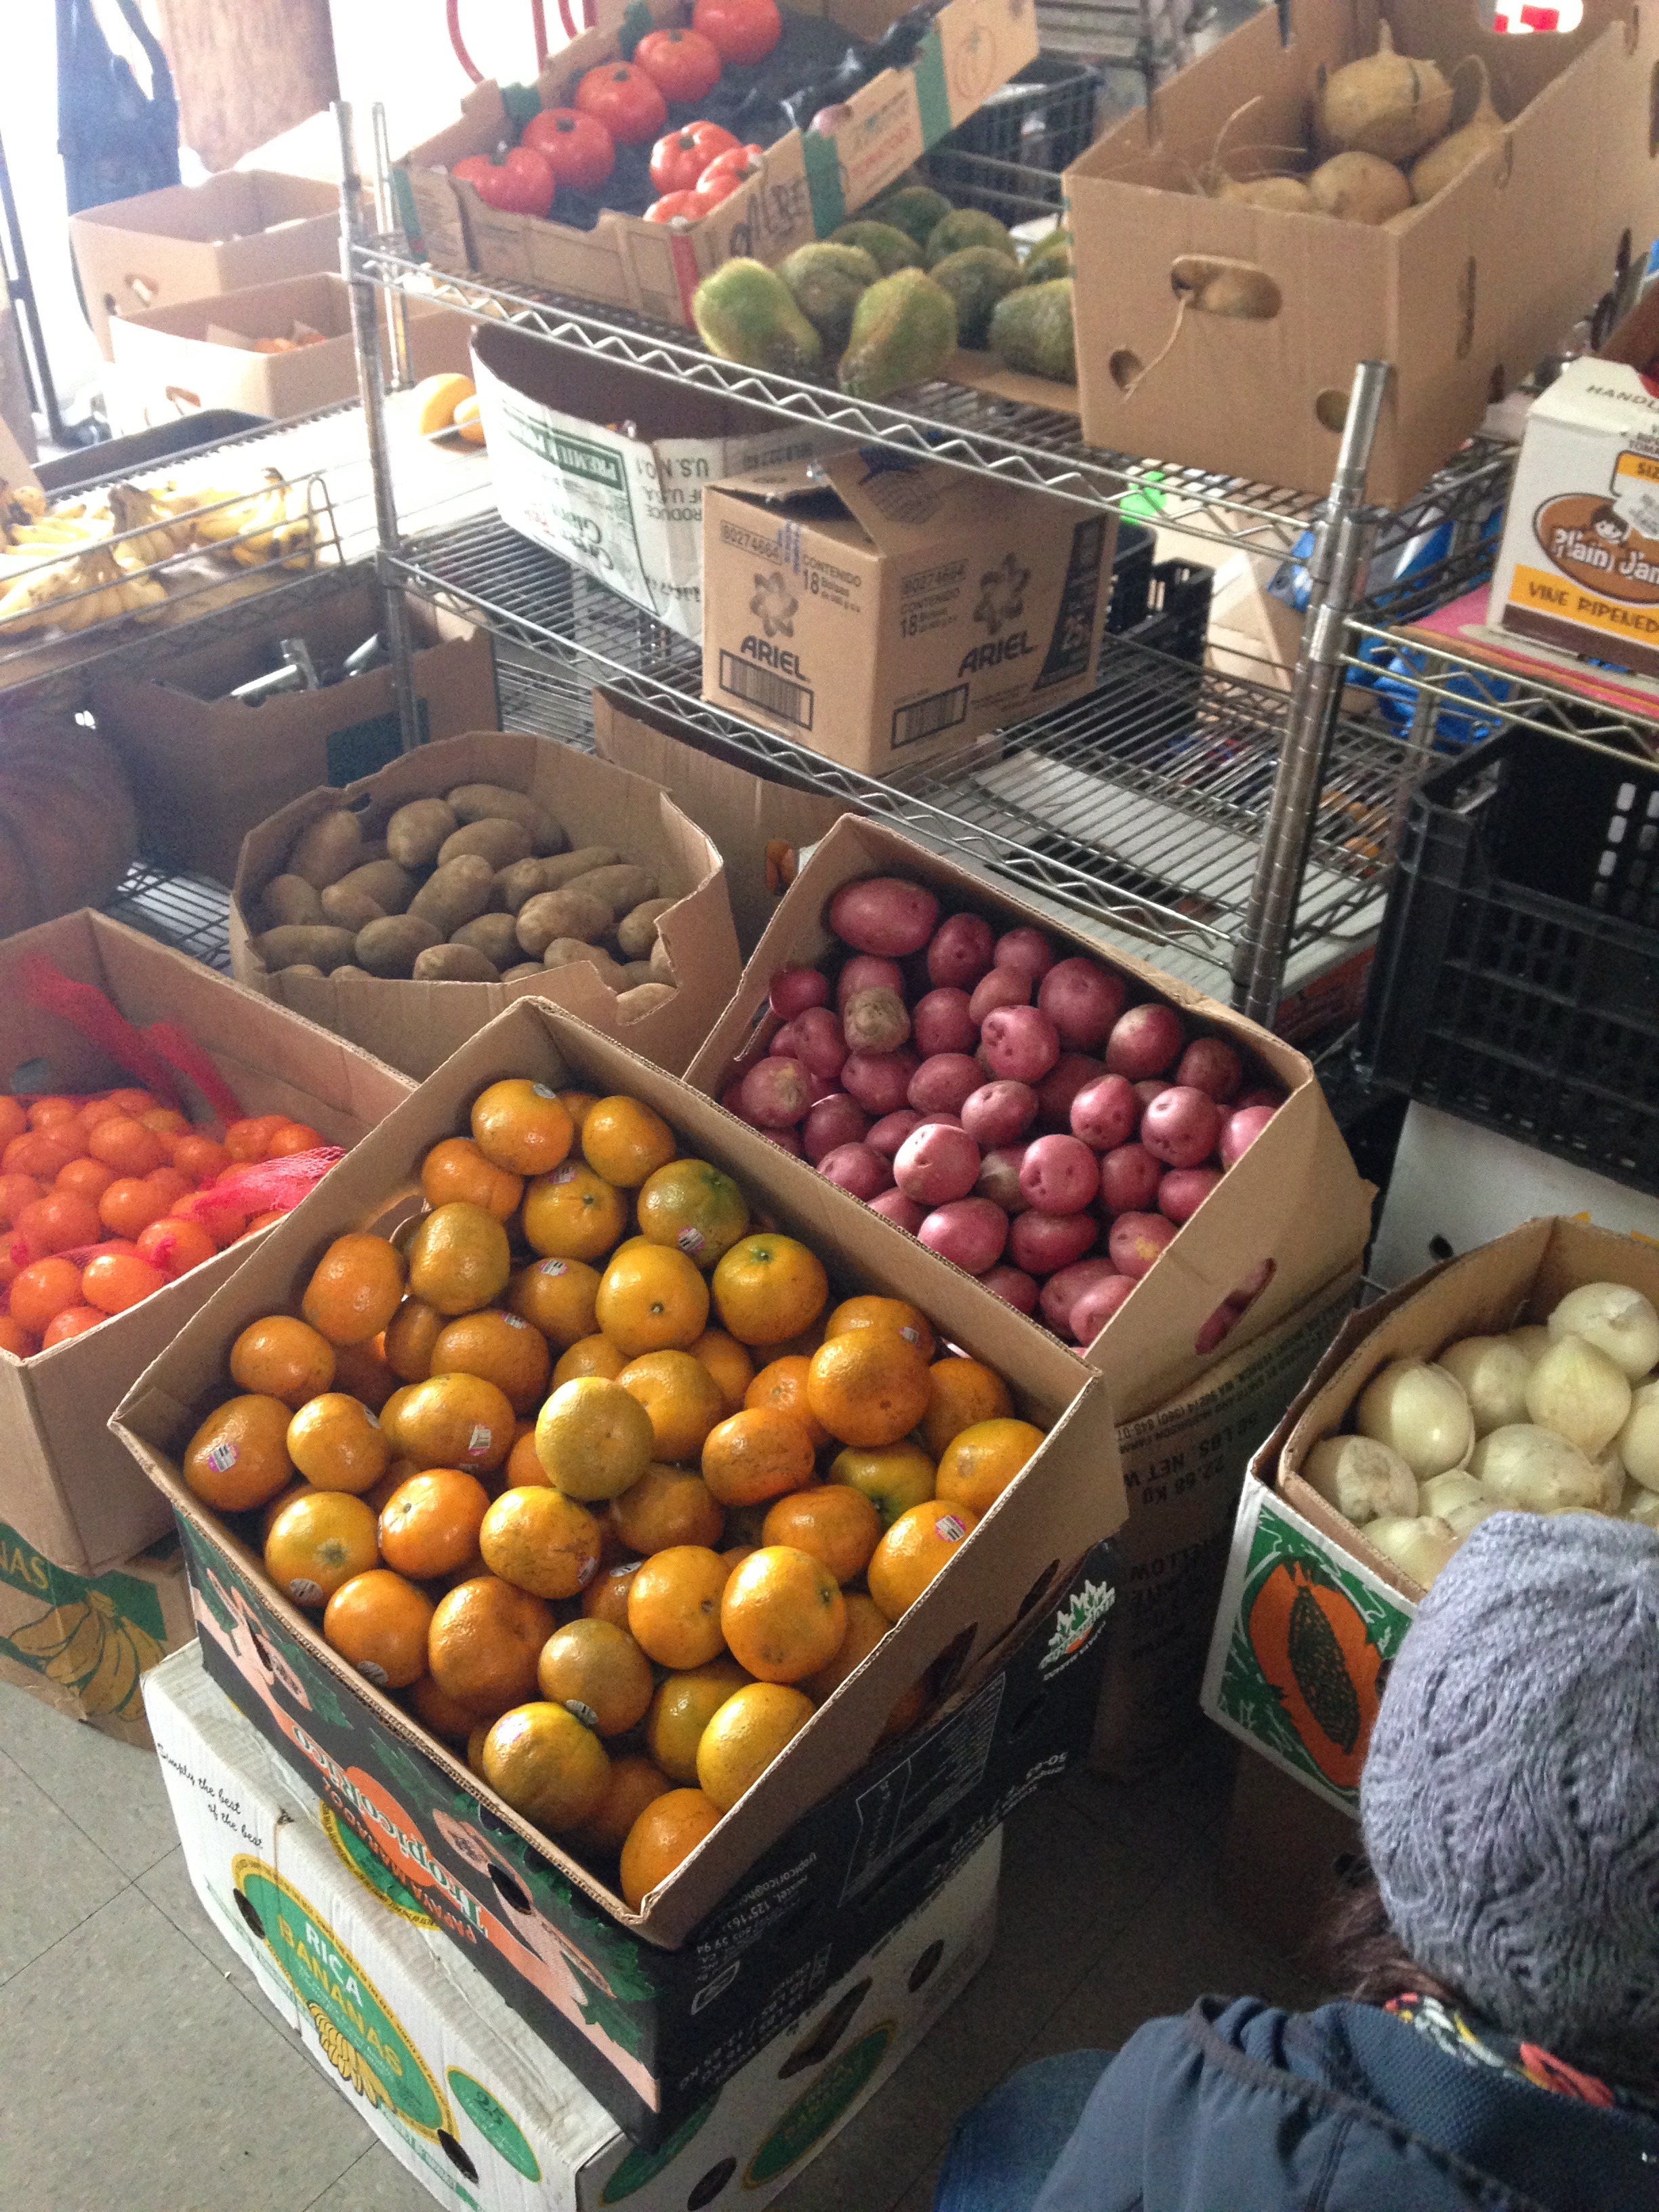 15 simple ways to save money on groceries from www.goingzerowaste.com